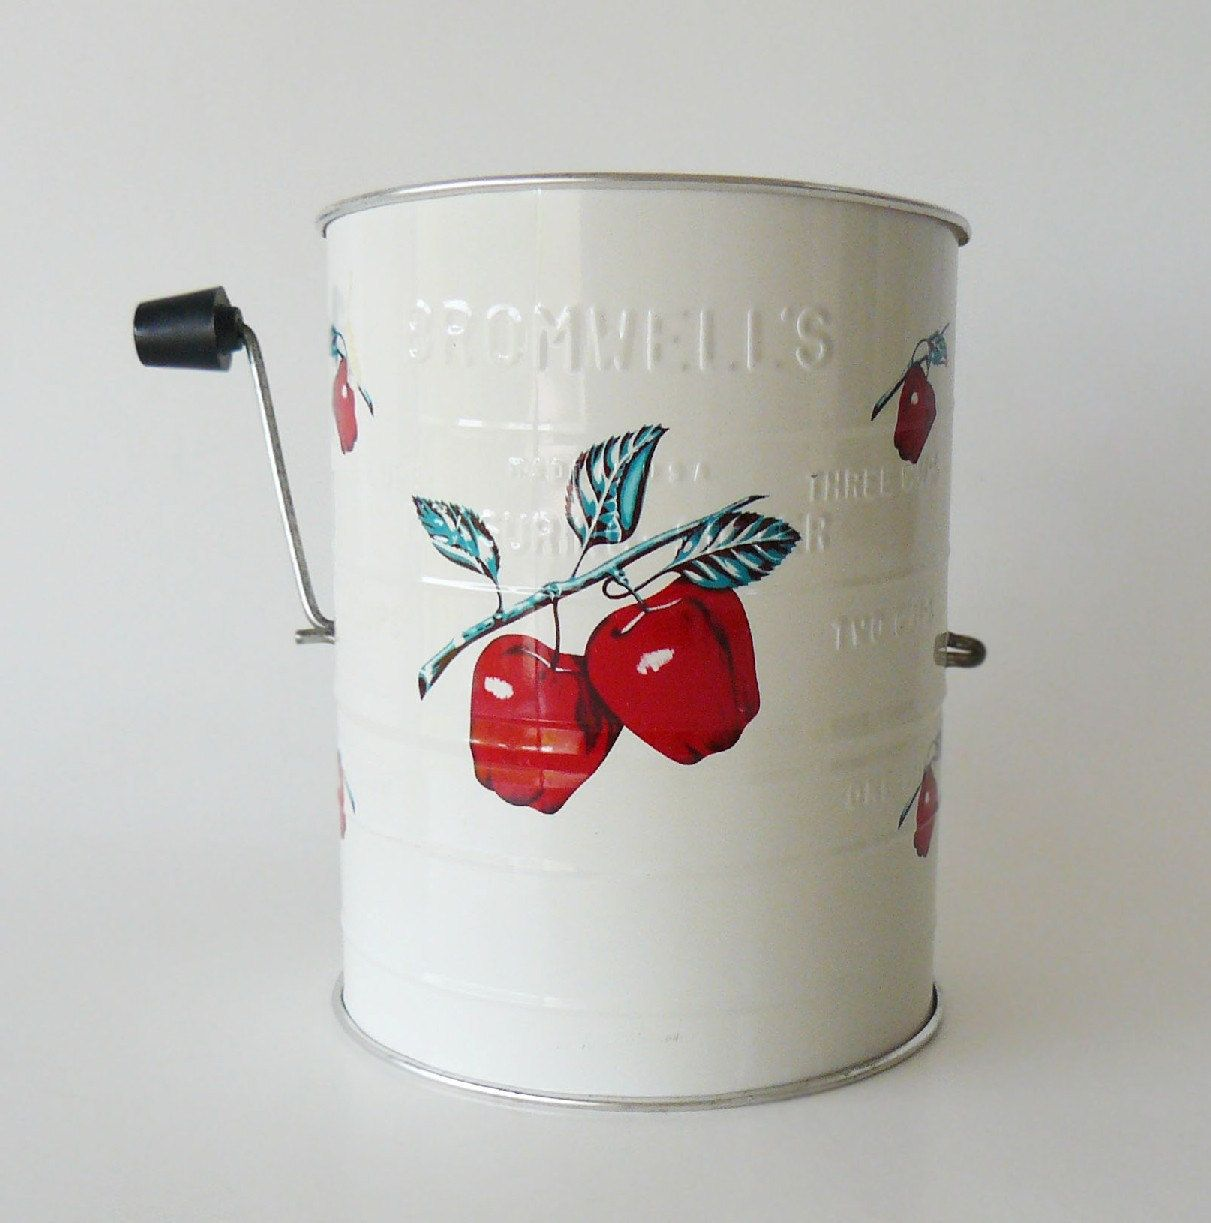 Retro 1950's Bromwell's 3 Cup Flour Sifter with Ruby Red Apples ~ from Etsy